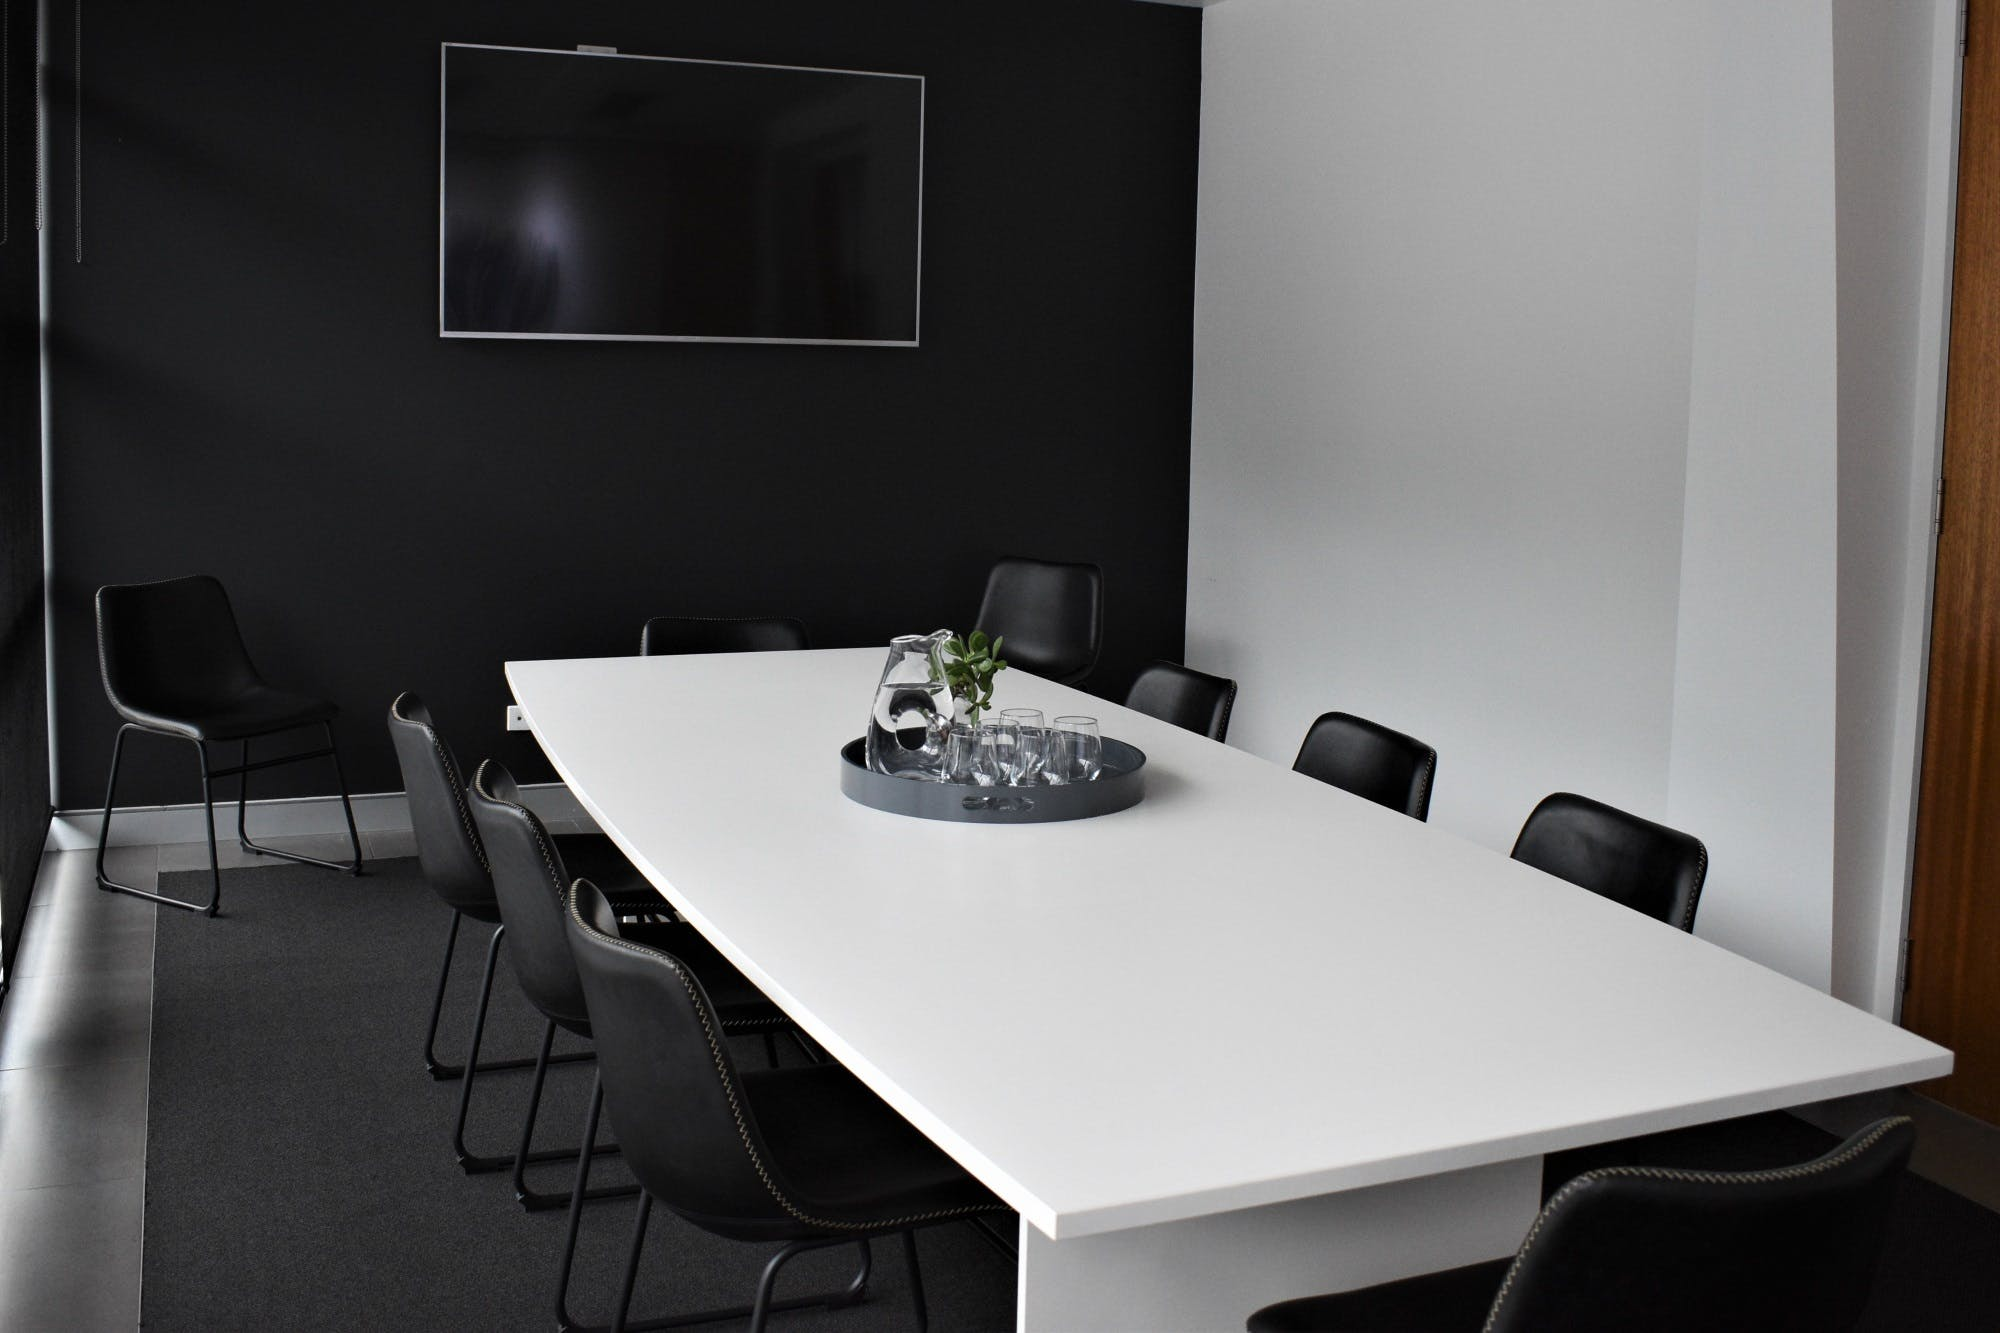 Meeting room at Fleks WorkSpaces, image 1